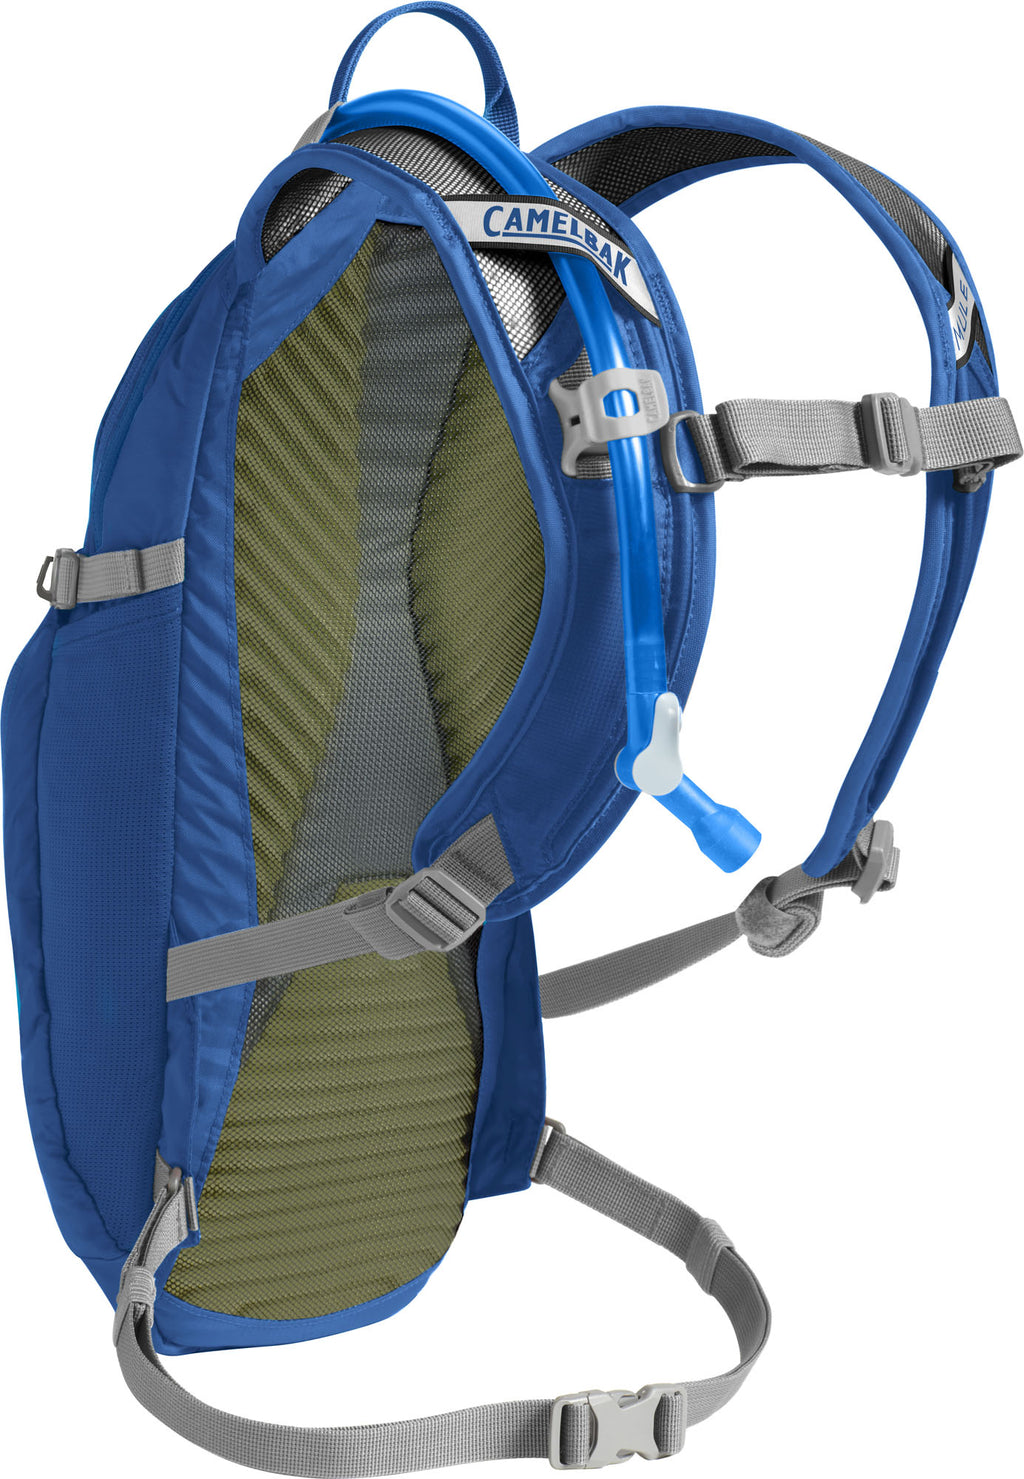 CamelBak LOBO 100oz Cycling Hydration Pack Lapis Blue/Silver